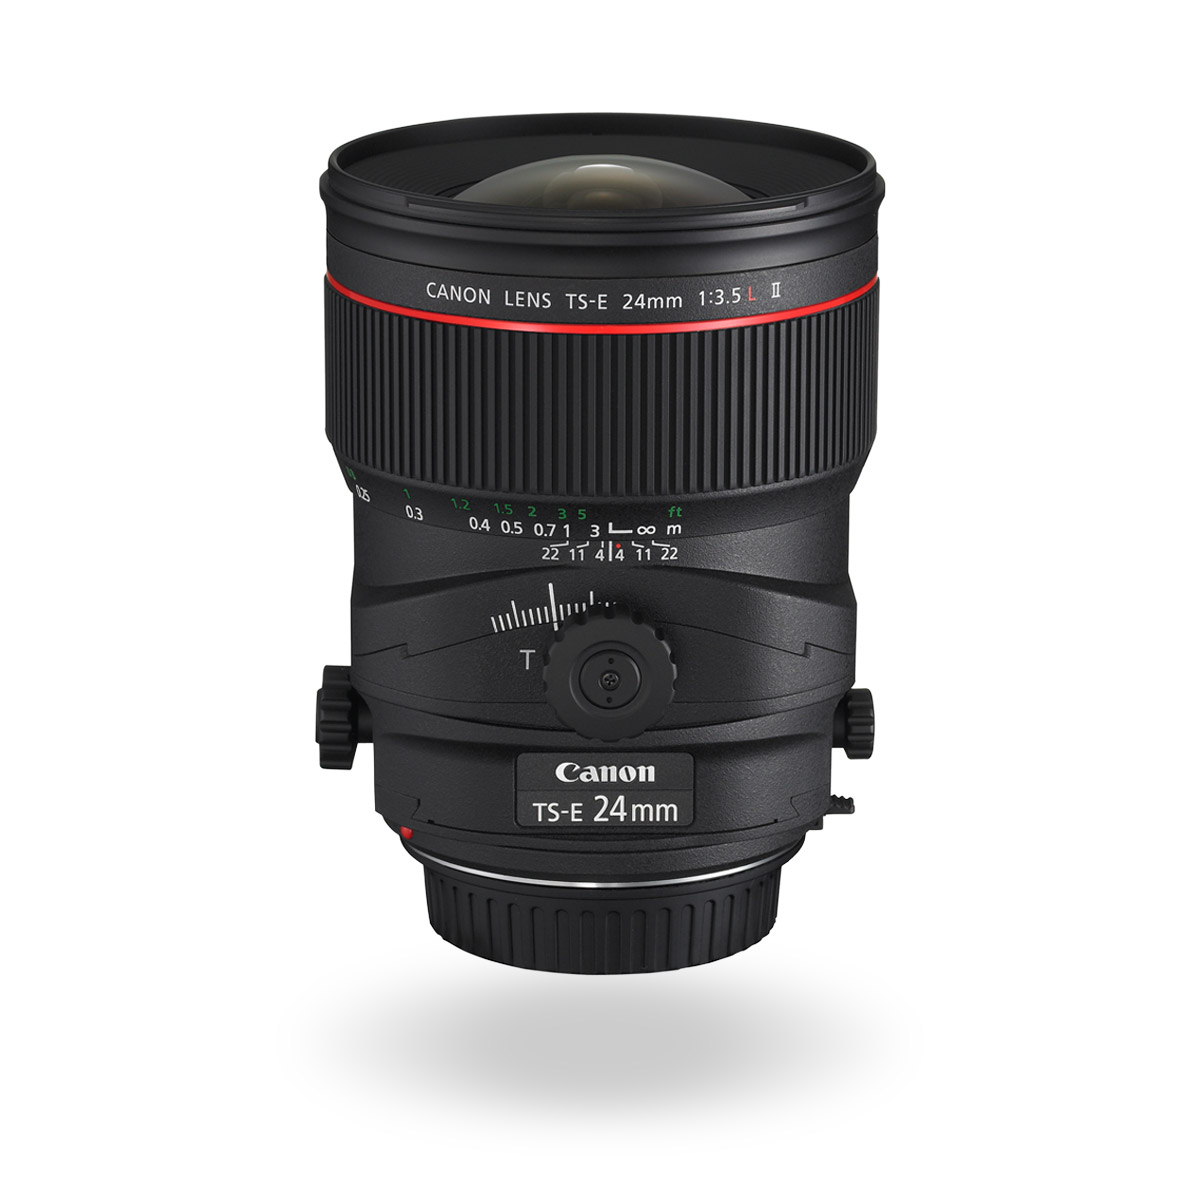 TS-E 24mm f/3.5L II Tilt Shift lens